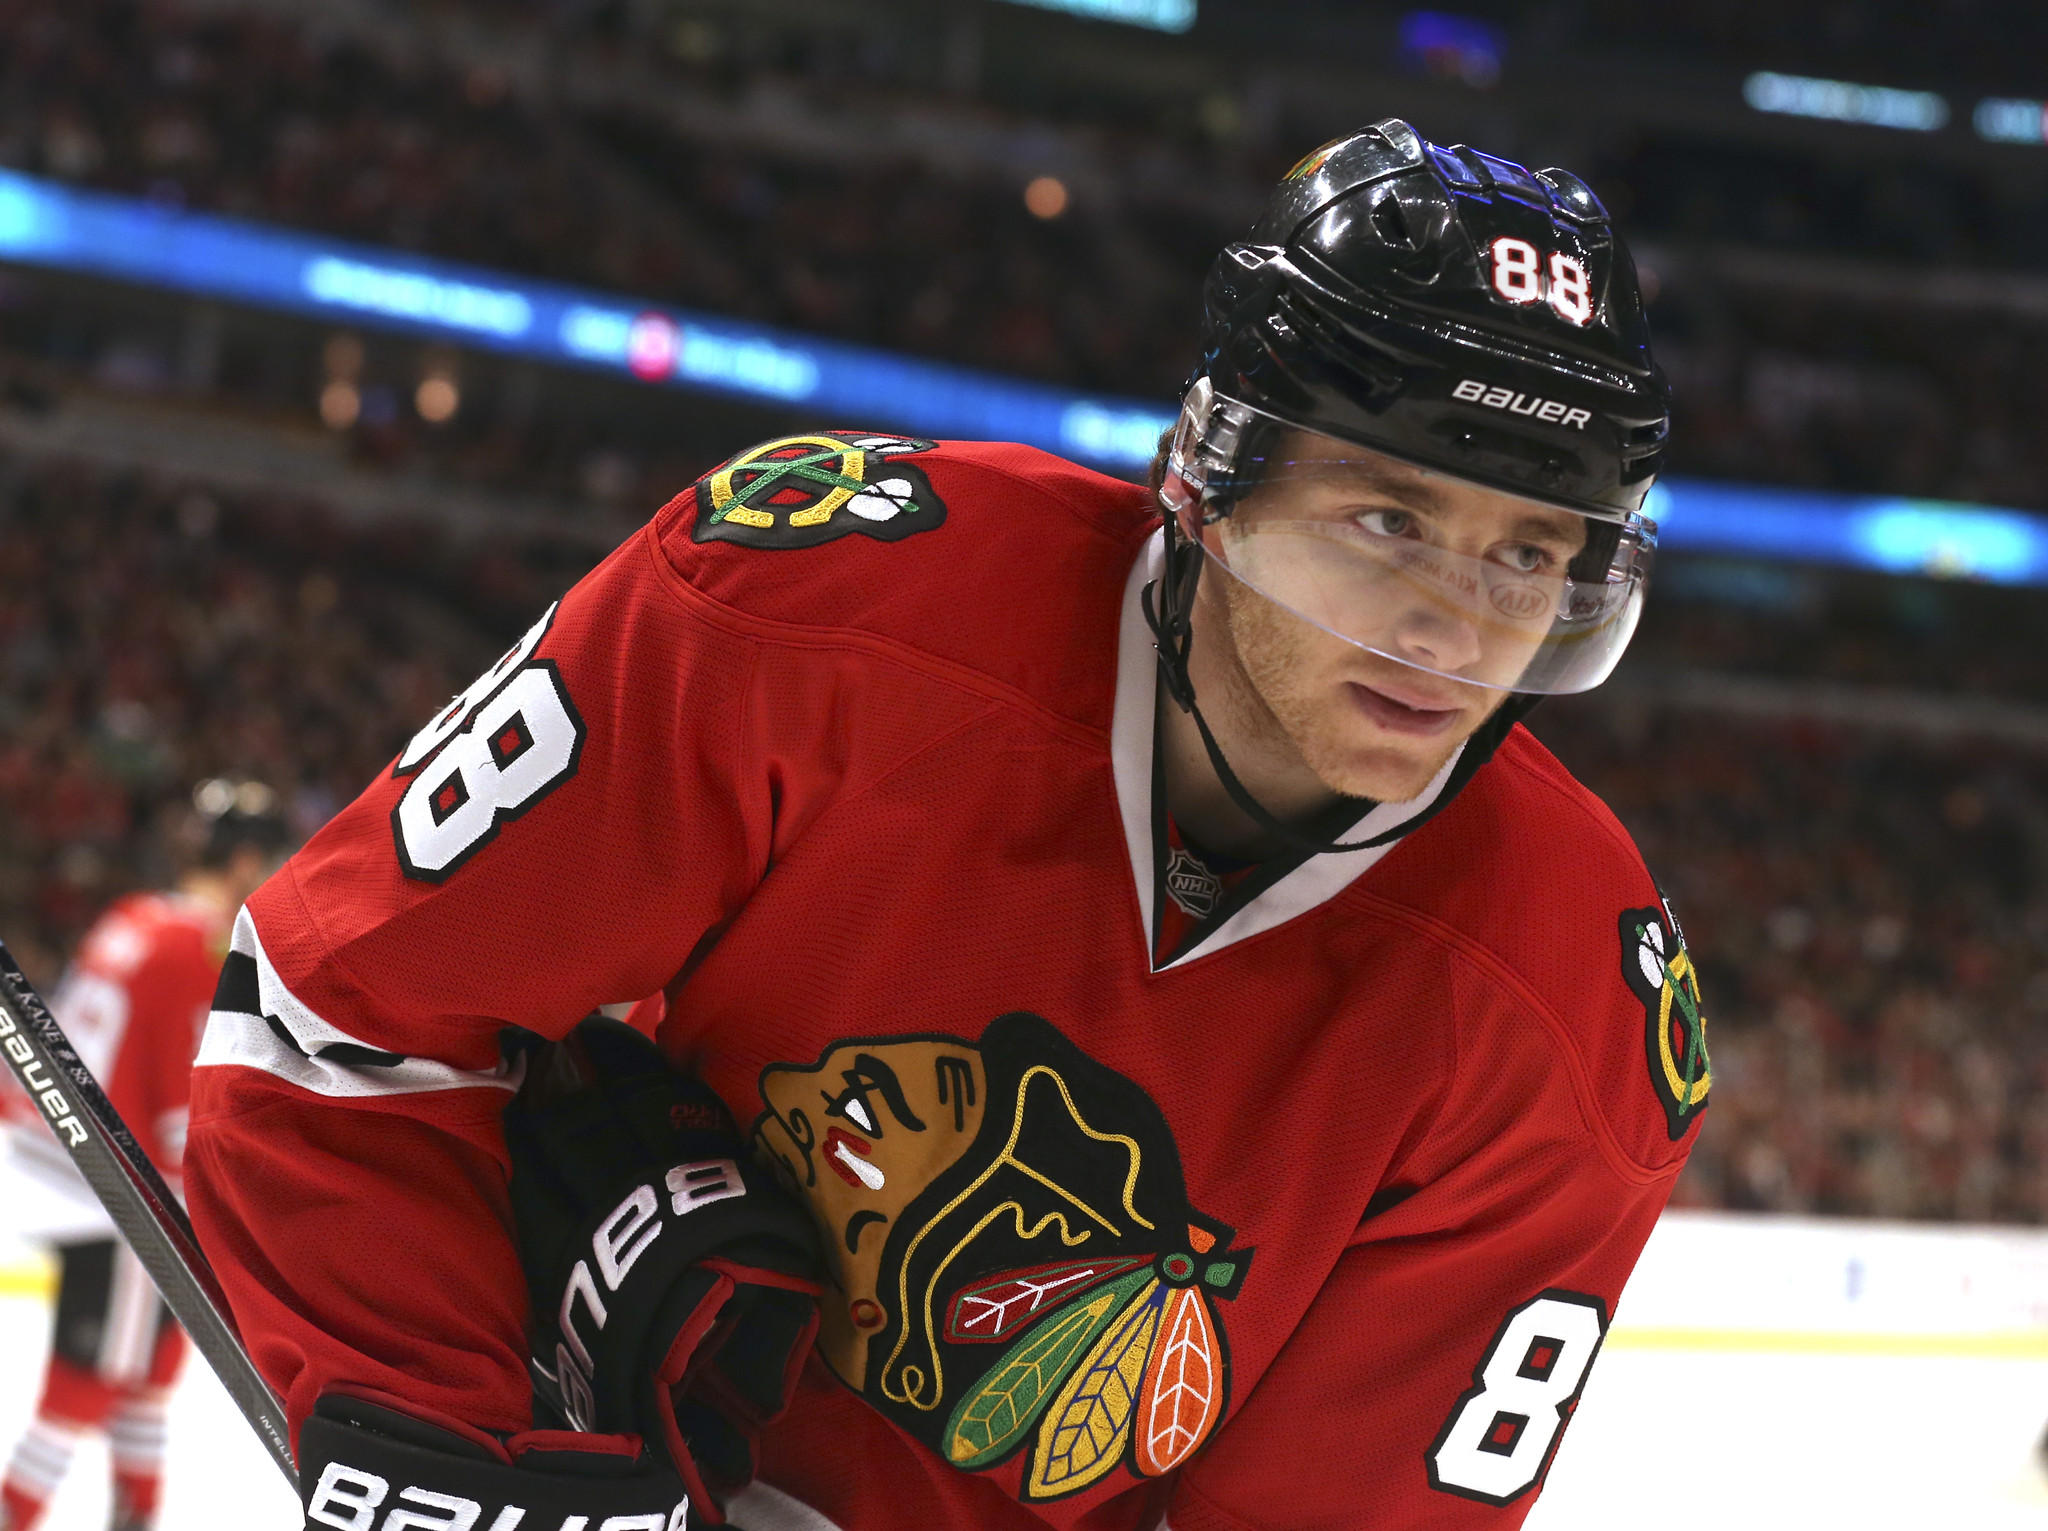 Patrick Kane during the first period of his team's game against the Edmonton Oilers at the United Center.